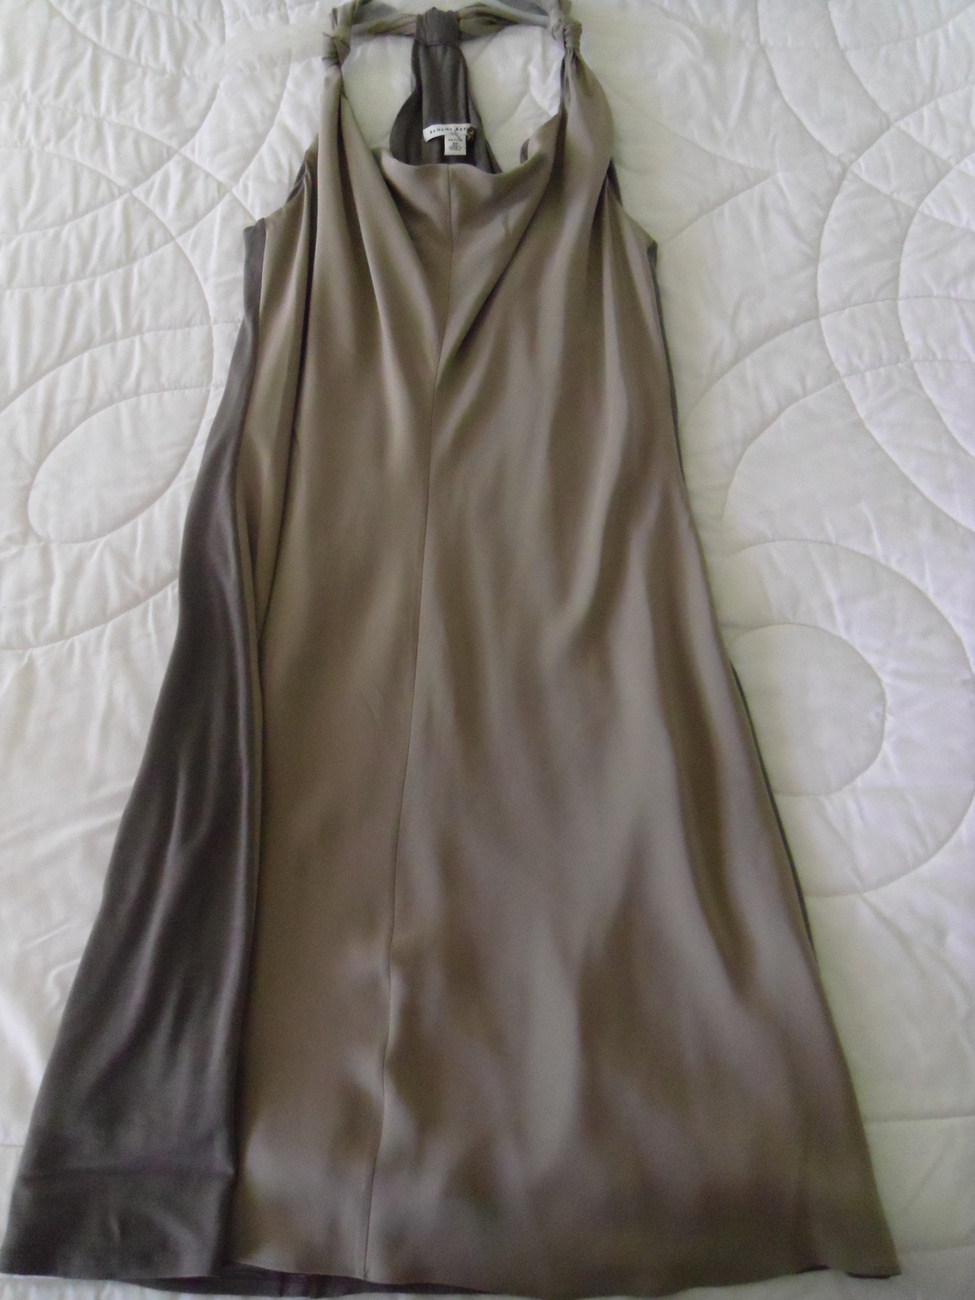 NEW BANANA REPUBLIC SLEEVELESS TAUPE COLOR SILK DRESS SIZE 8P